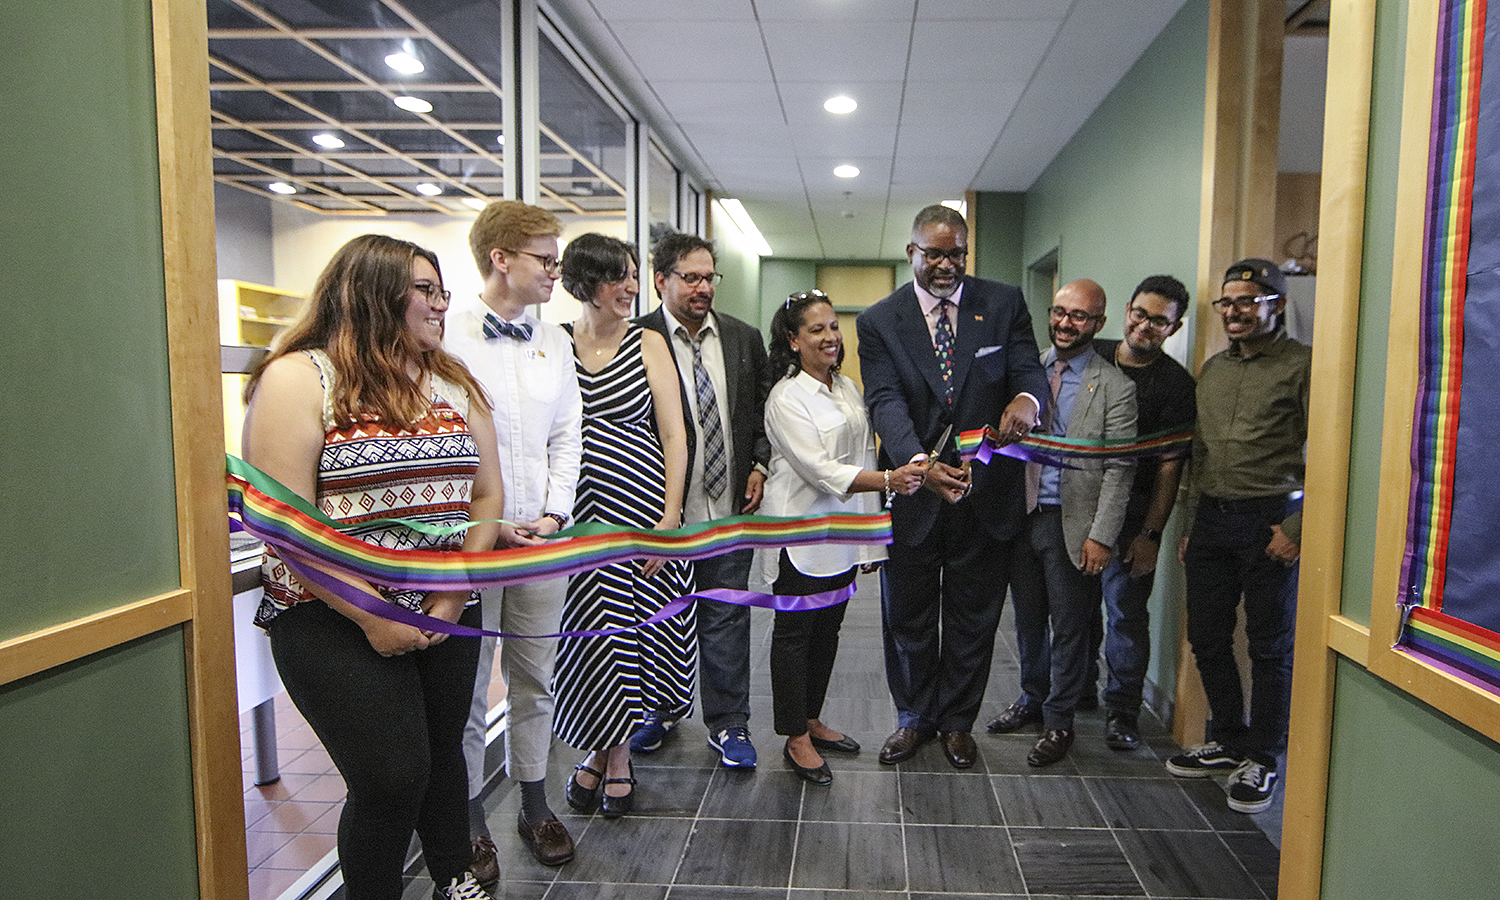 Kim Wilson Vincent and President Gregory J. Vincent '83 cut the ribbon of the Colleges' new LGBTQ+ Resource Center in de Cordova Hall. The new Center provides programming, education and outreach initiatives.